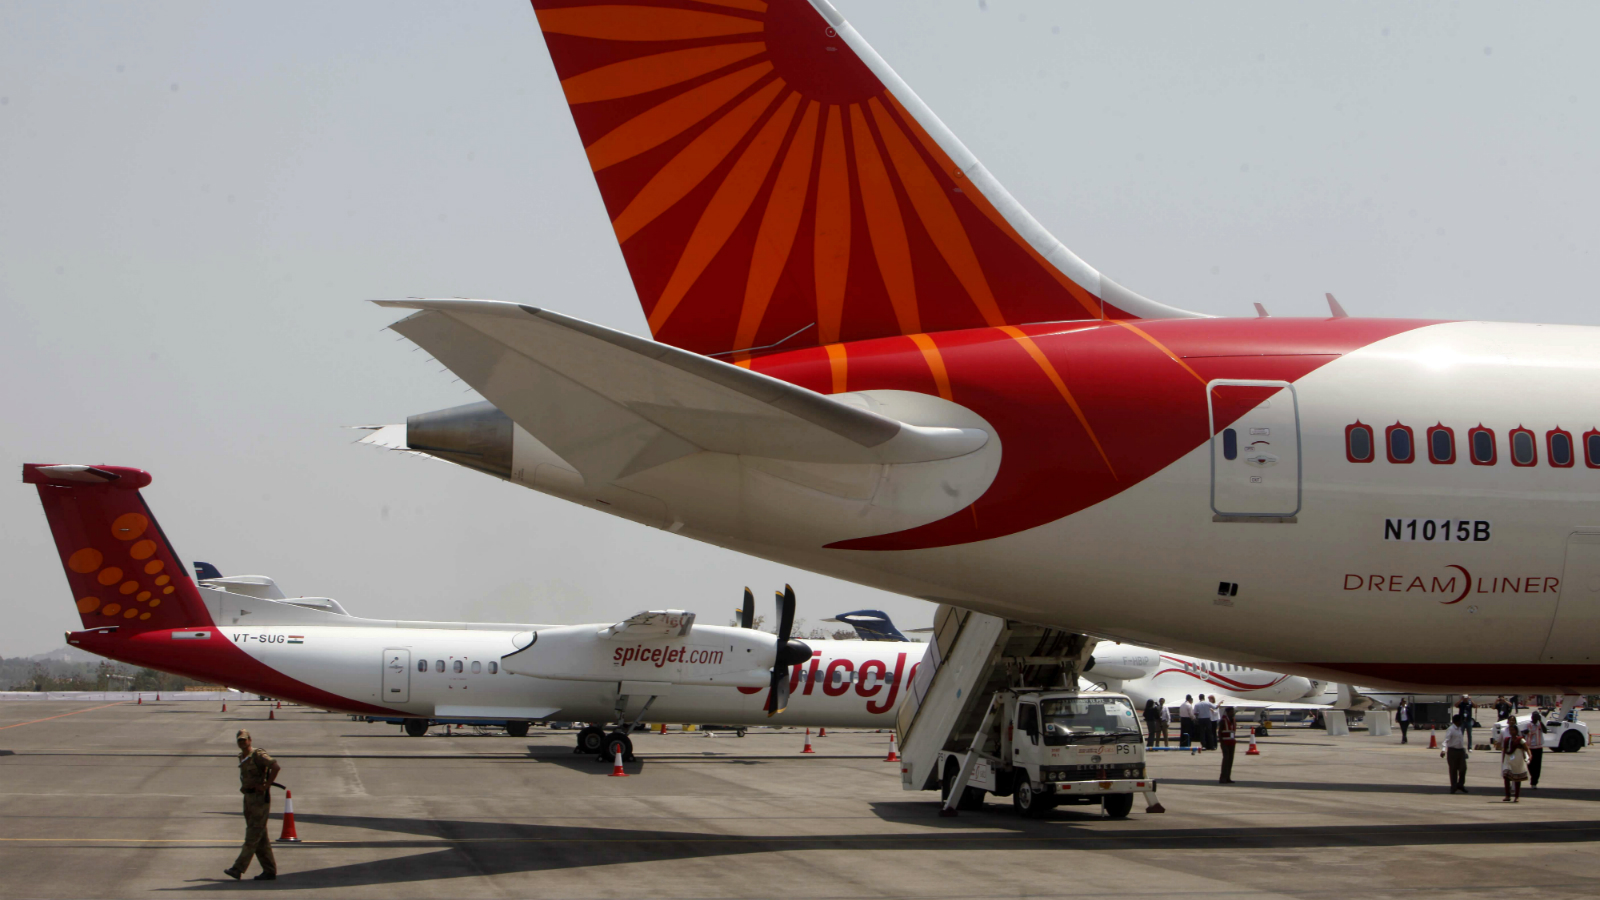 An Indian security officer stands in front of a newly inducted Air India Boeing 787-8 series Dreamliner aircraft on static display during the opening day of India Aviation 2012 in Hyderabad, India, Wednesday, March 14, 2012. The third international exhibition and conference on civil Aviation, a five day event, is scheduled to run from March 14-18, where some 250 companies will showcase the latest global aerospace technology at the event.